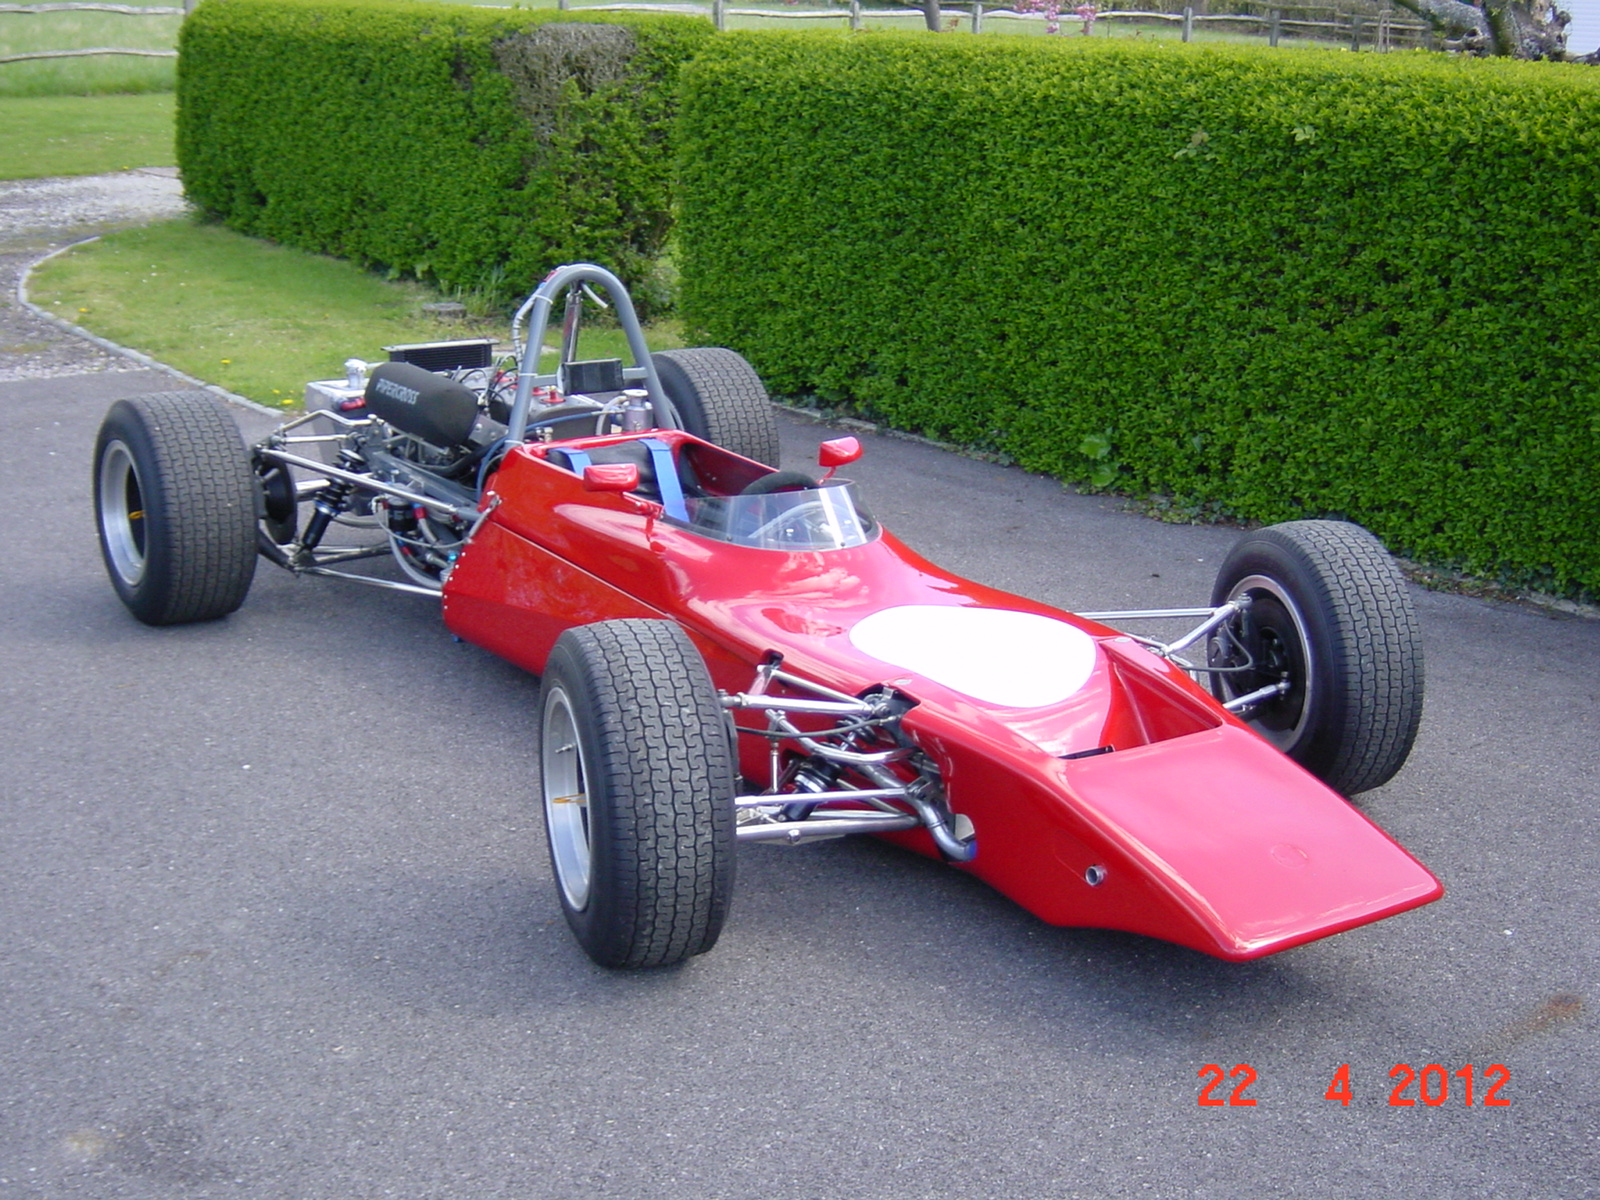 Lotus 59/69 F2 FVA UNDER OFFER - Group 6 Sports Cars